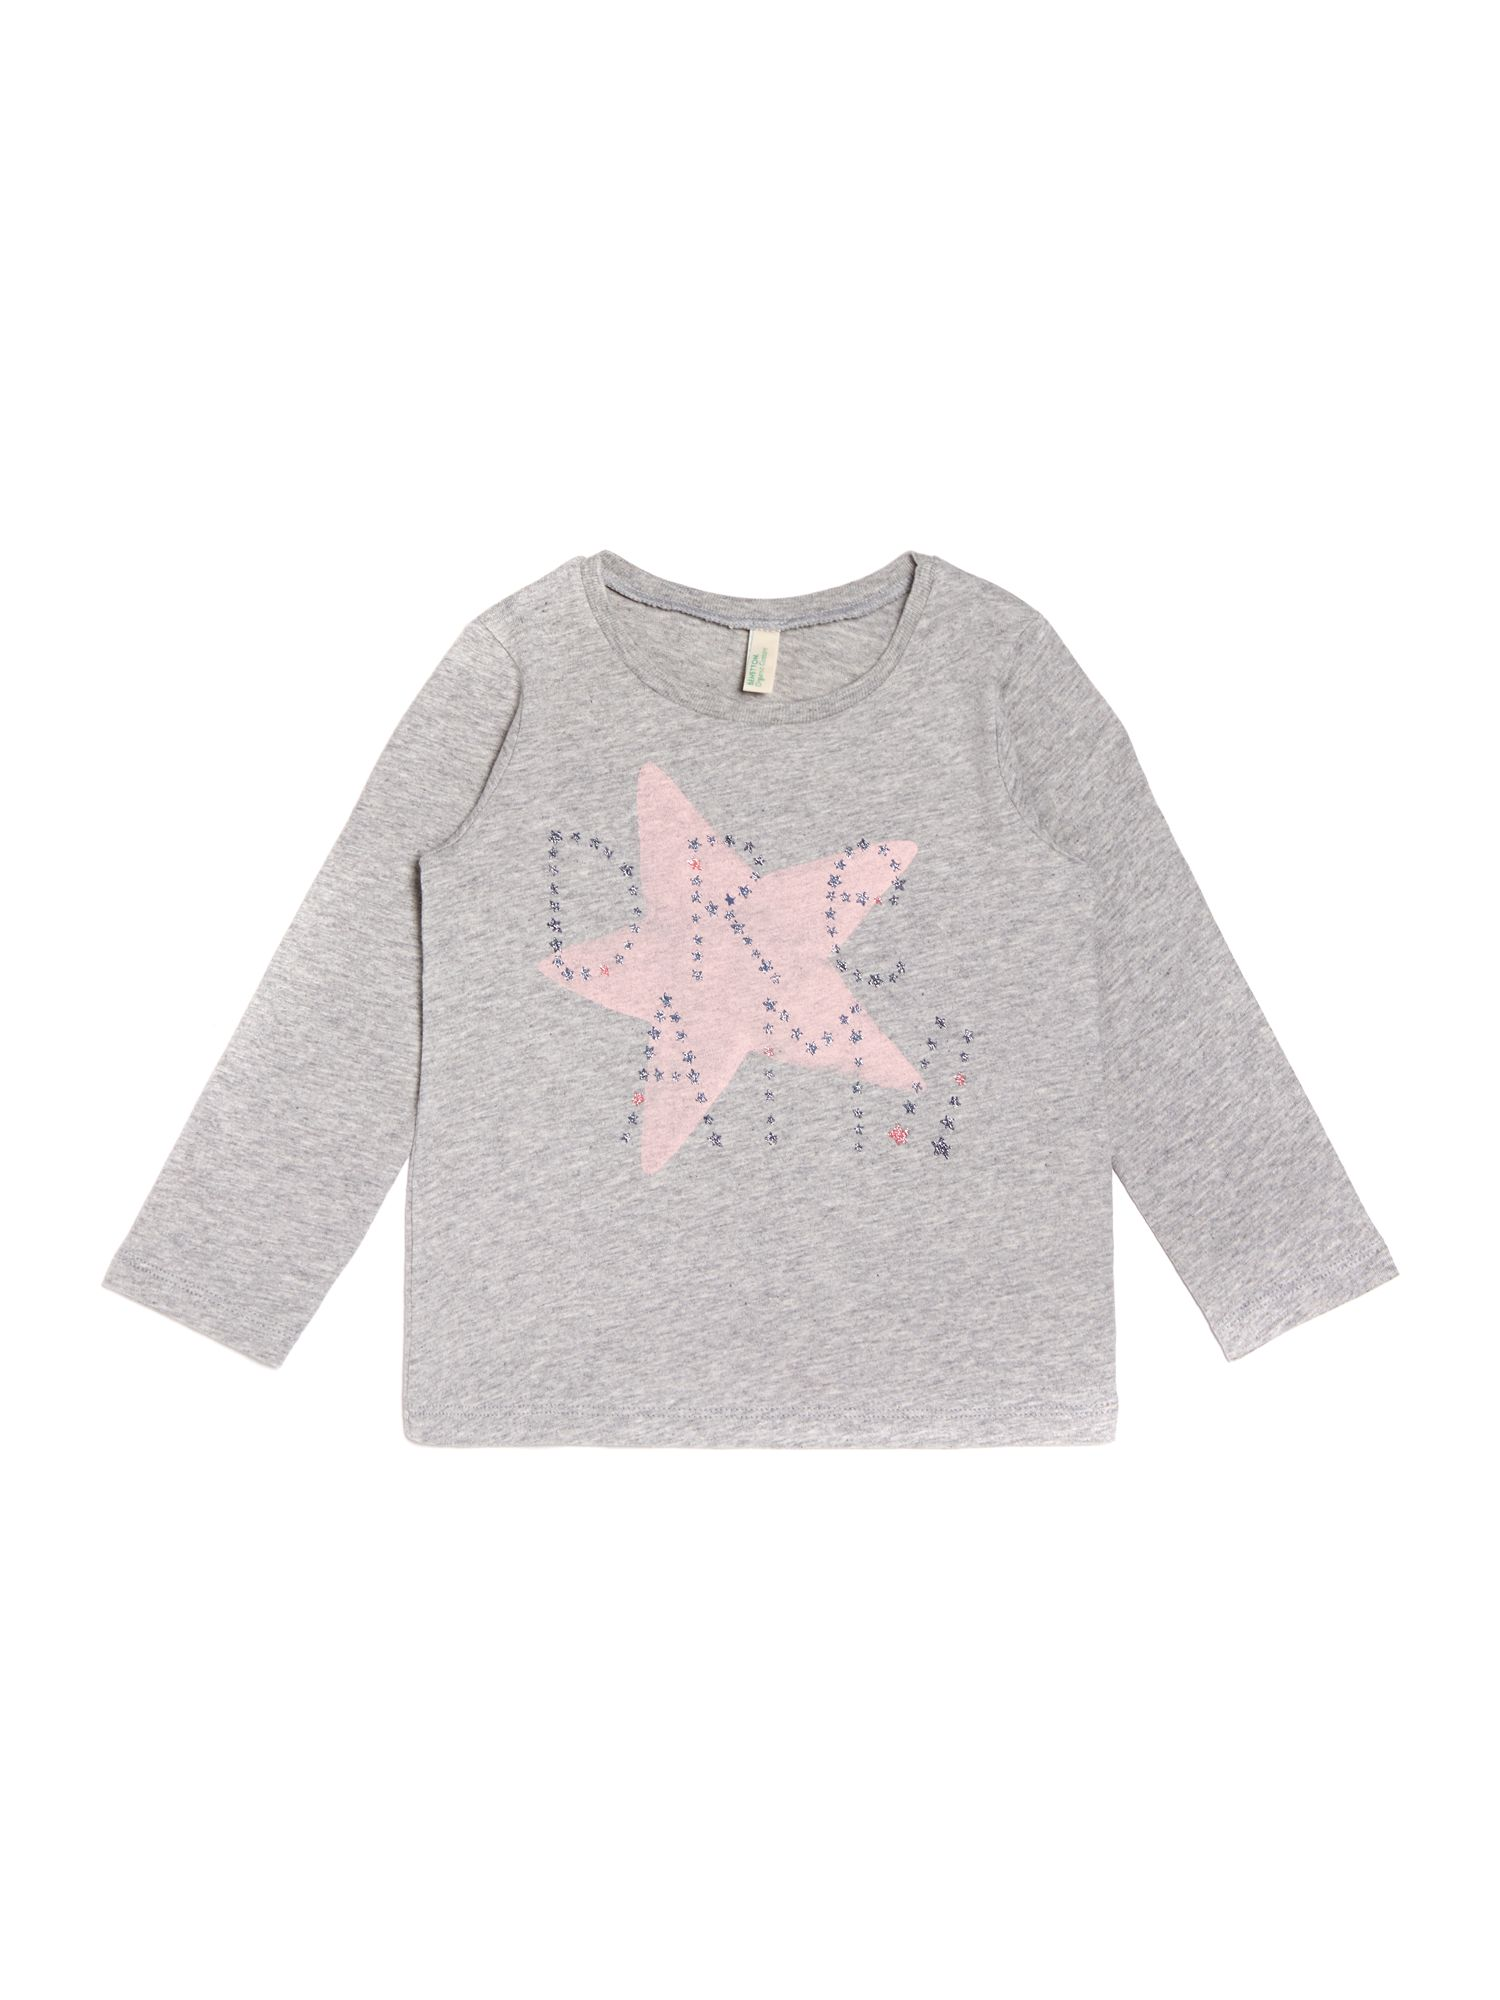 Girls star dream graphic top